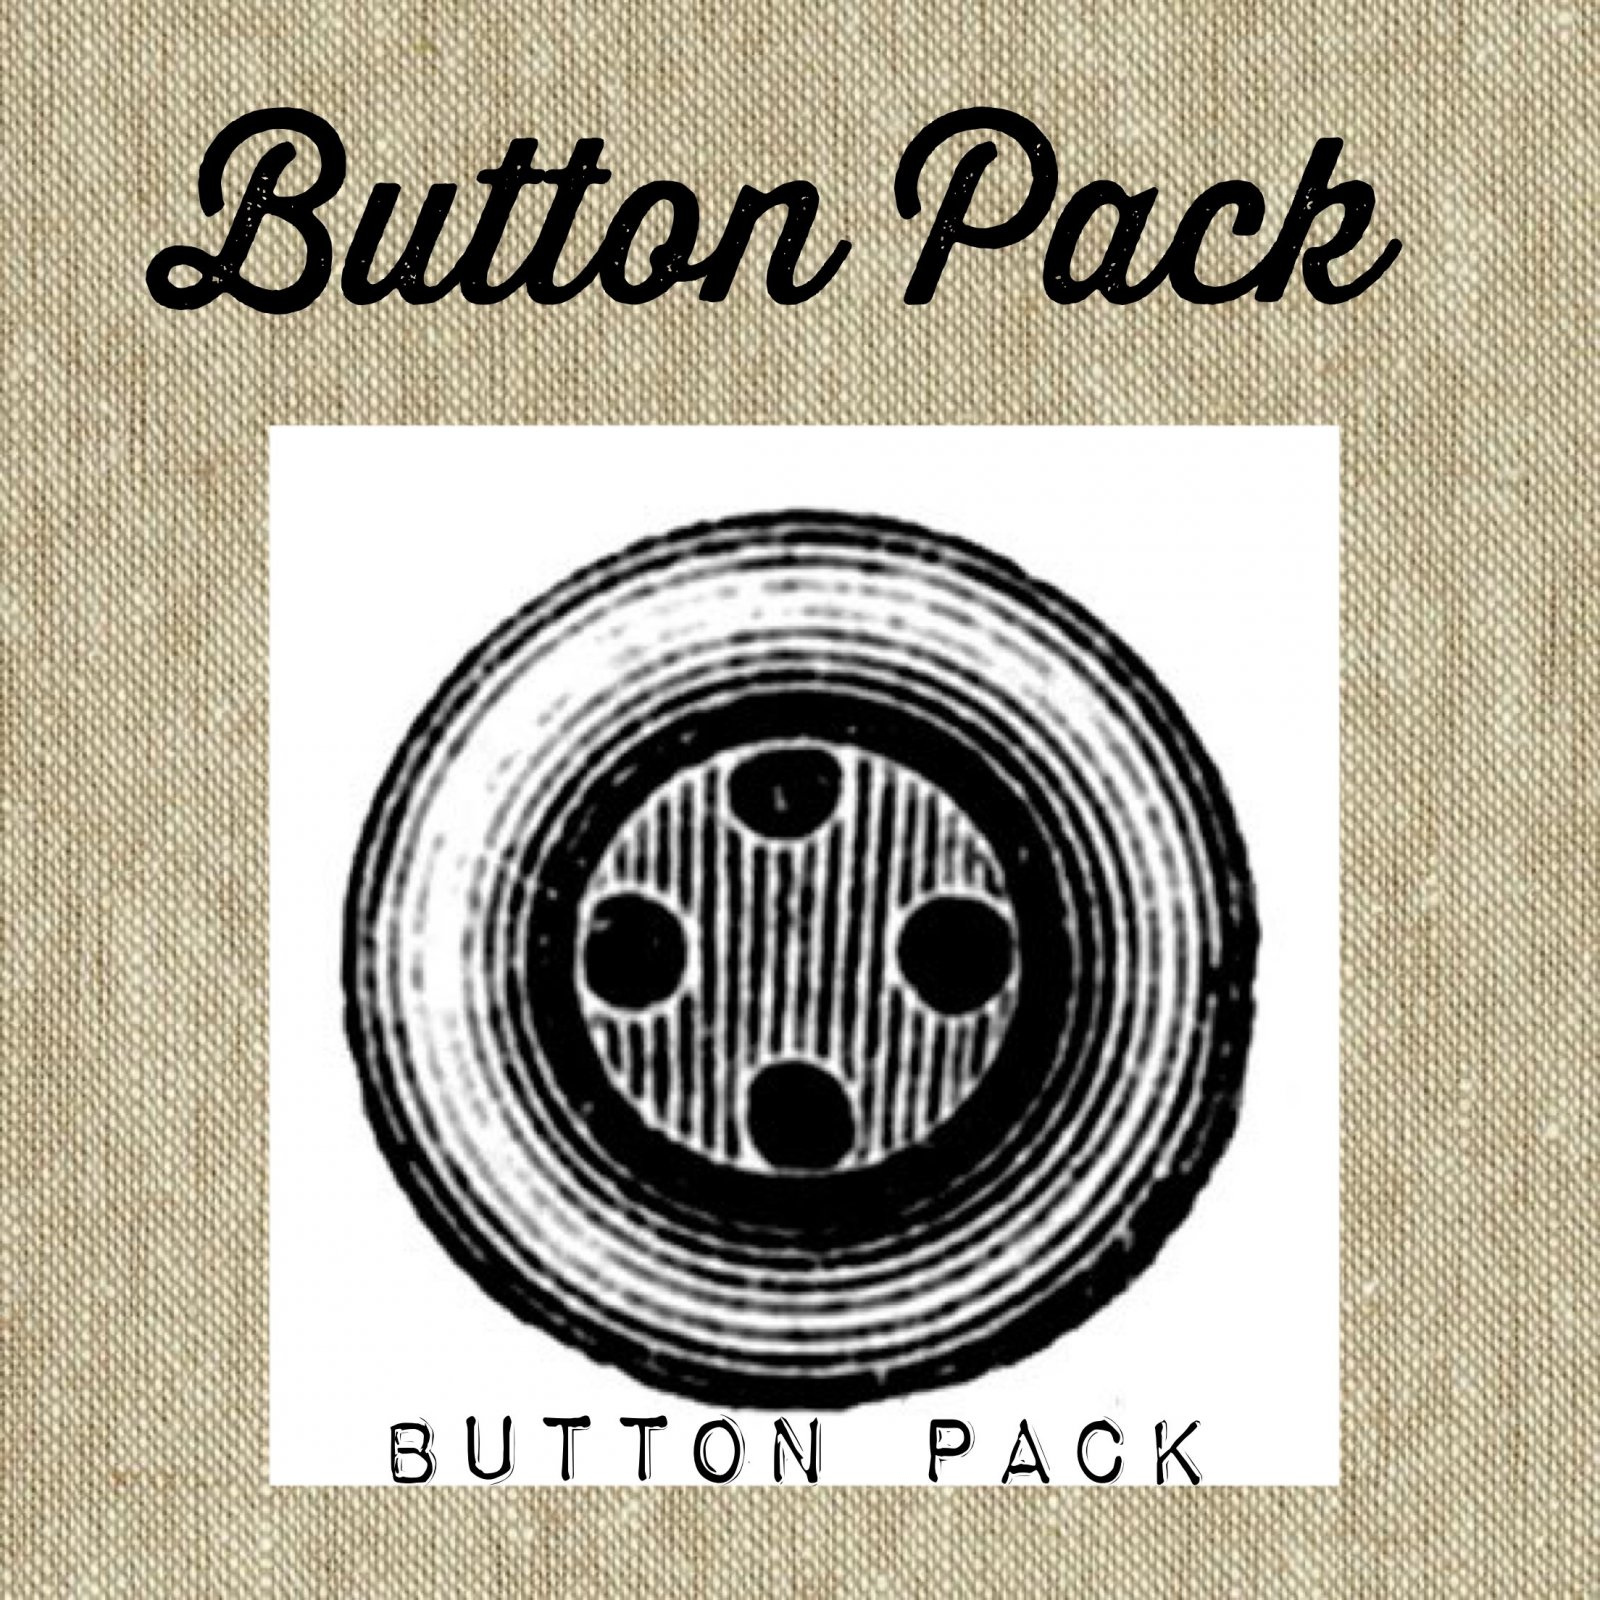 Buttermilk Basin's Vintage Vibe * Old Glory Picture Button Pack